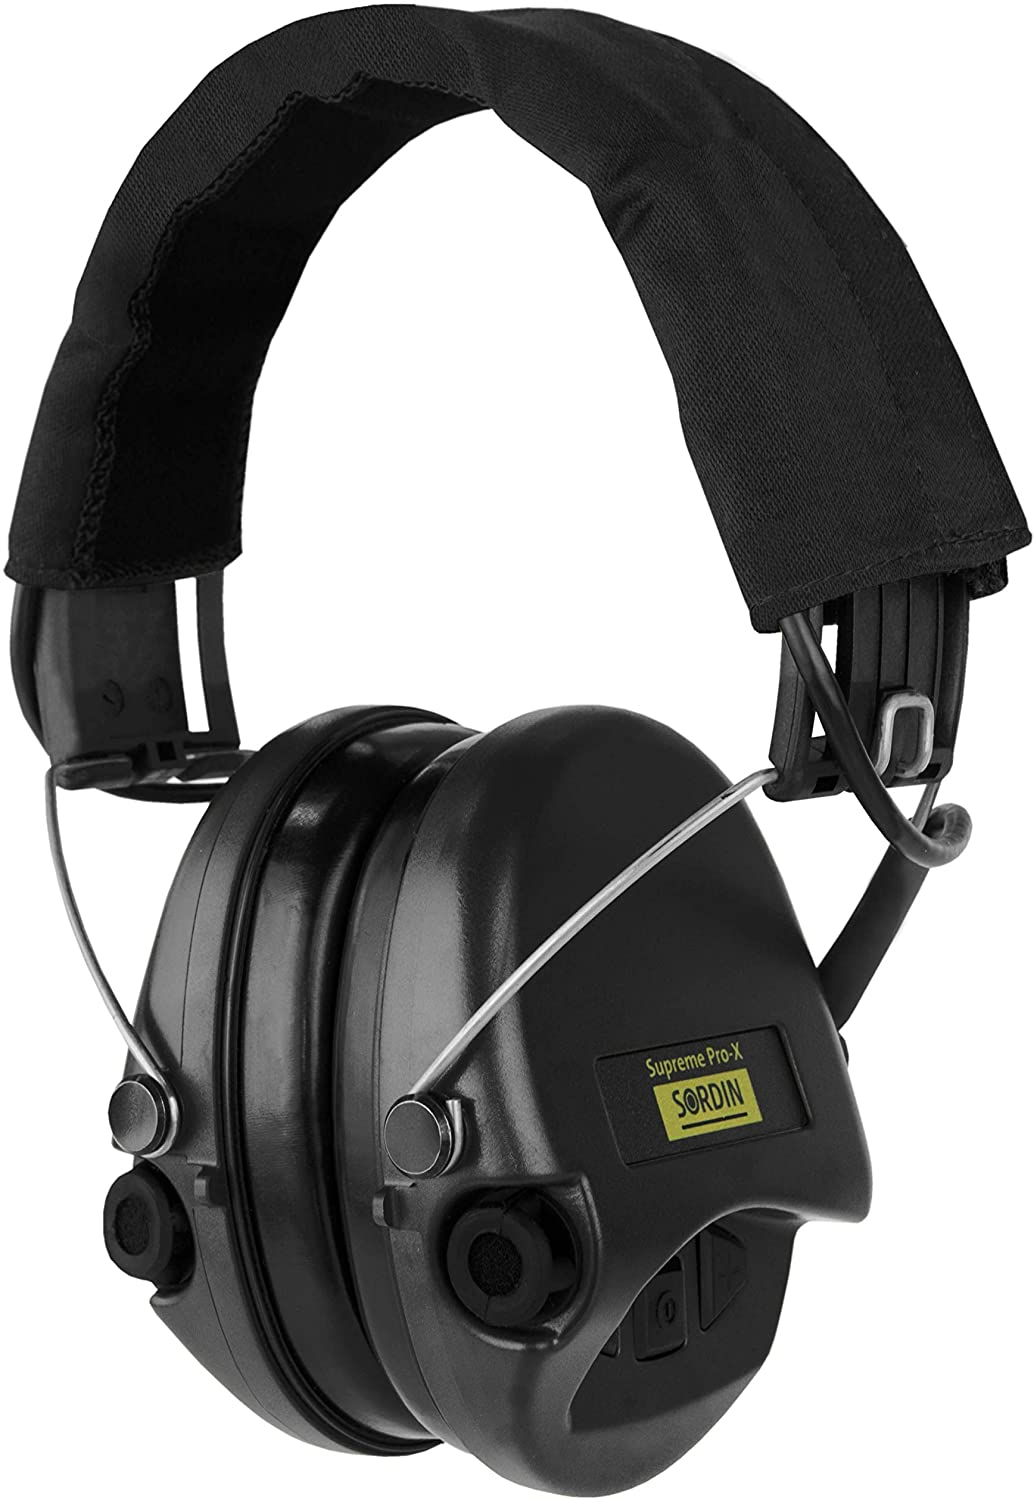 Sordin Supreme PRO X - Noise Reduction Hearing Protection Active Safety Ear Muffs - Black Canvas Headband and Cups